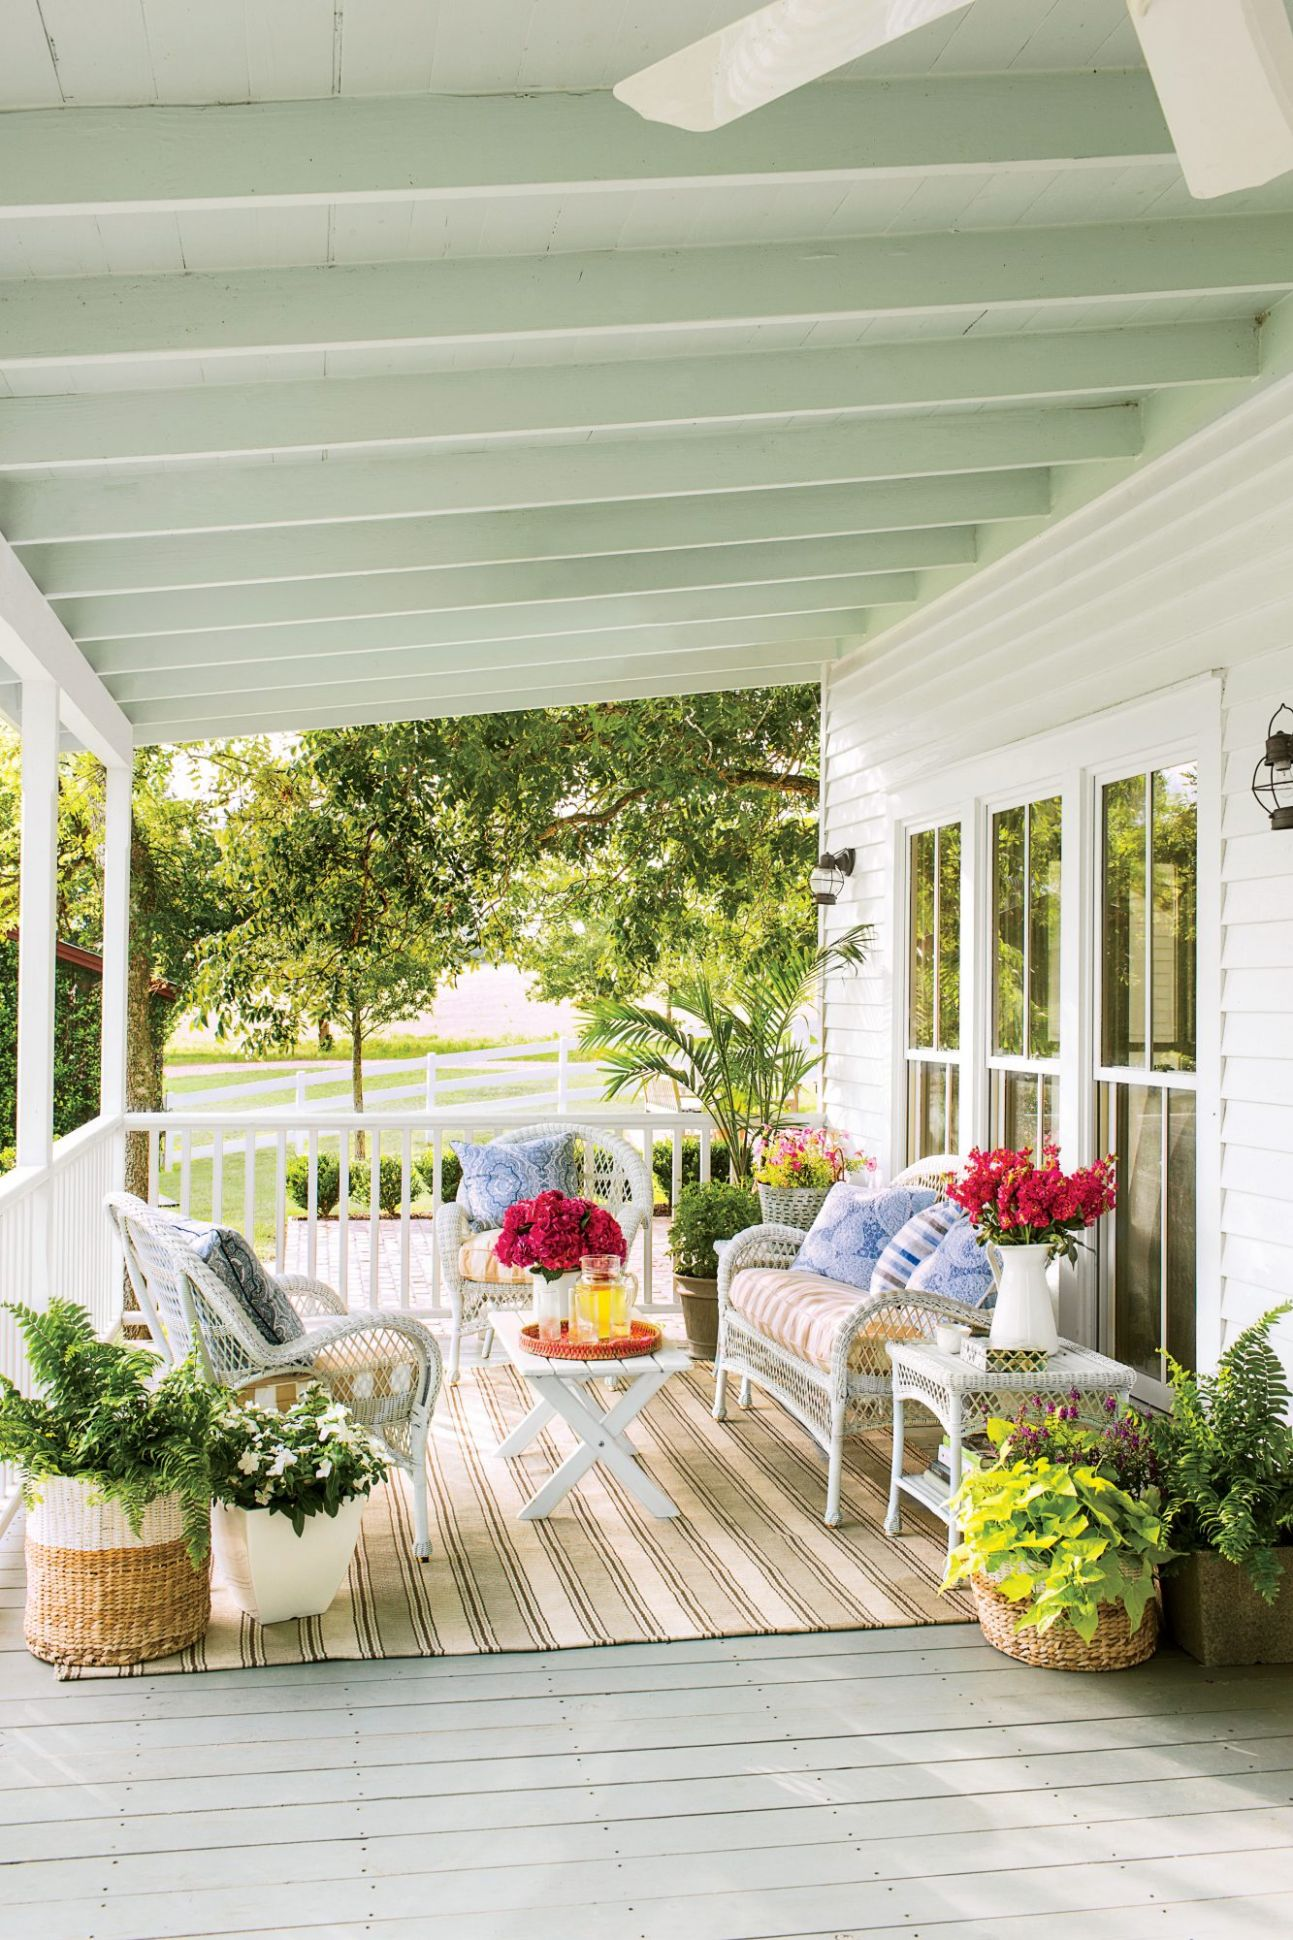 12 No-Fuss Floral Decorating Ideas For Your Front Porch | Southern ..